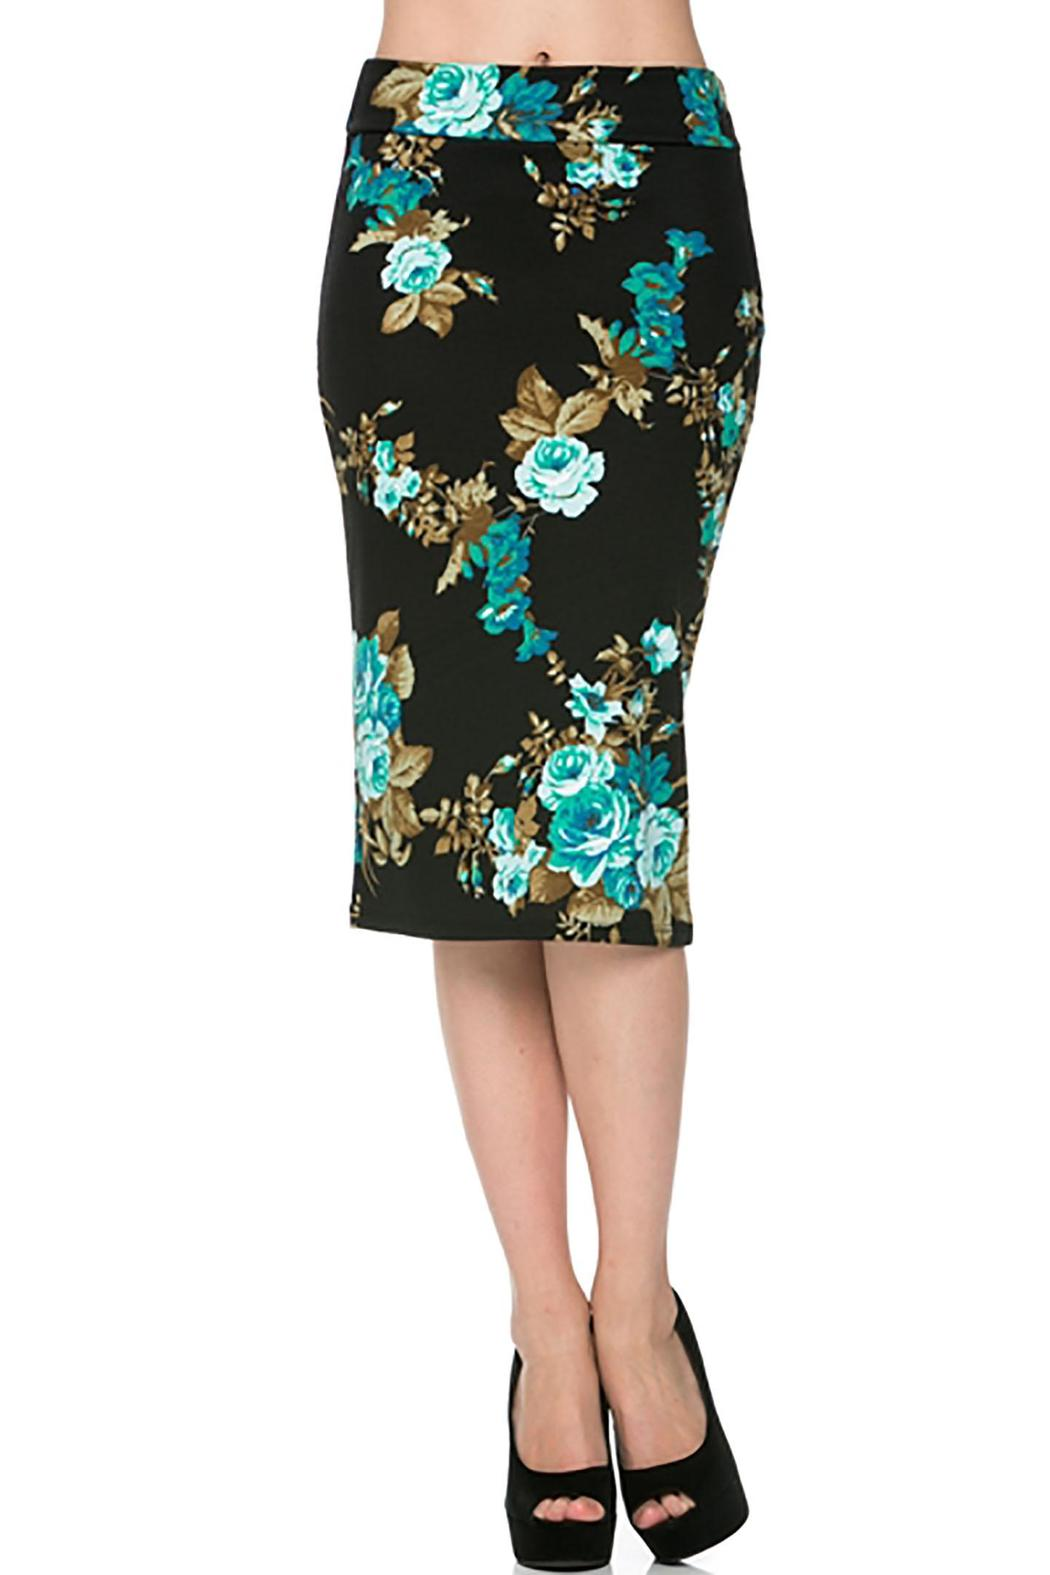 Details about SK TALBOTS Woman Silk Long Pencil Skirt Black White Embroidered Floral 1 viewed per hour. SK TALBOTS Woman Silk Long Pencil Skirt Black White Embroidered Floral 18 | Add to watch list. Find out more about the Top-Rated Seller program - opens in a new window or tab.